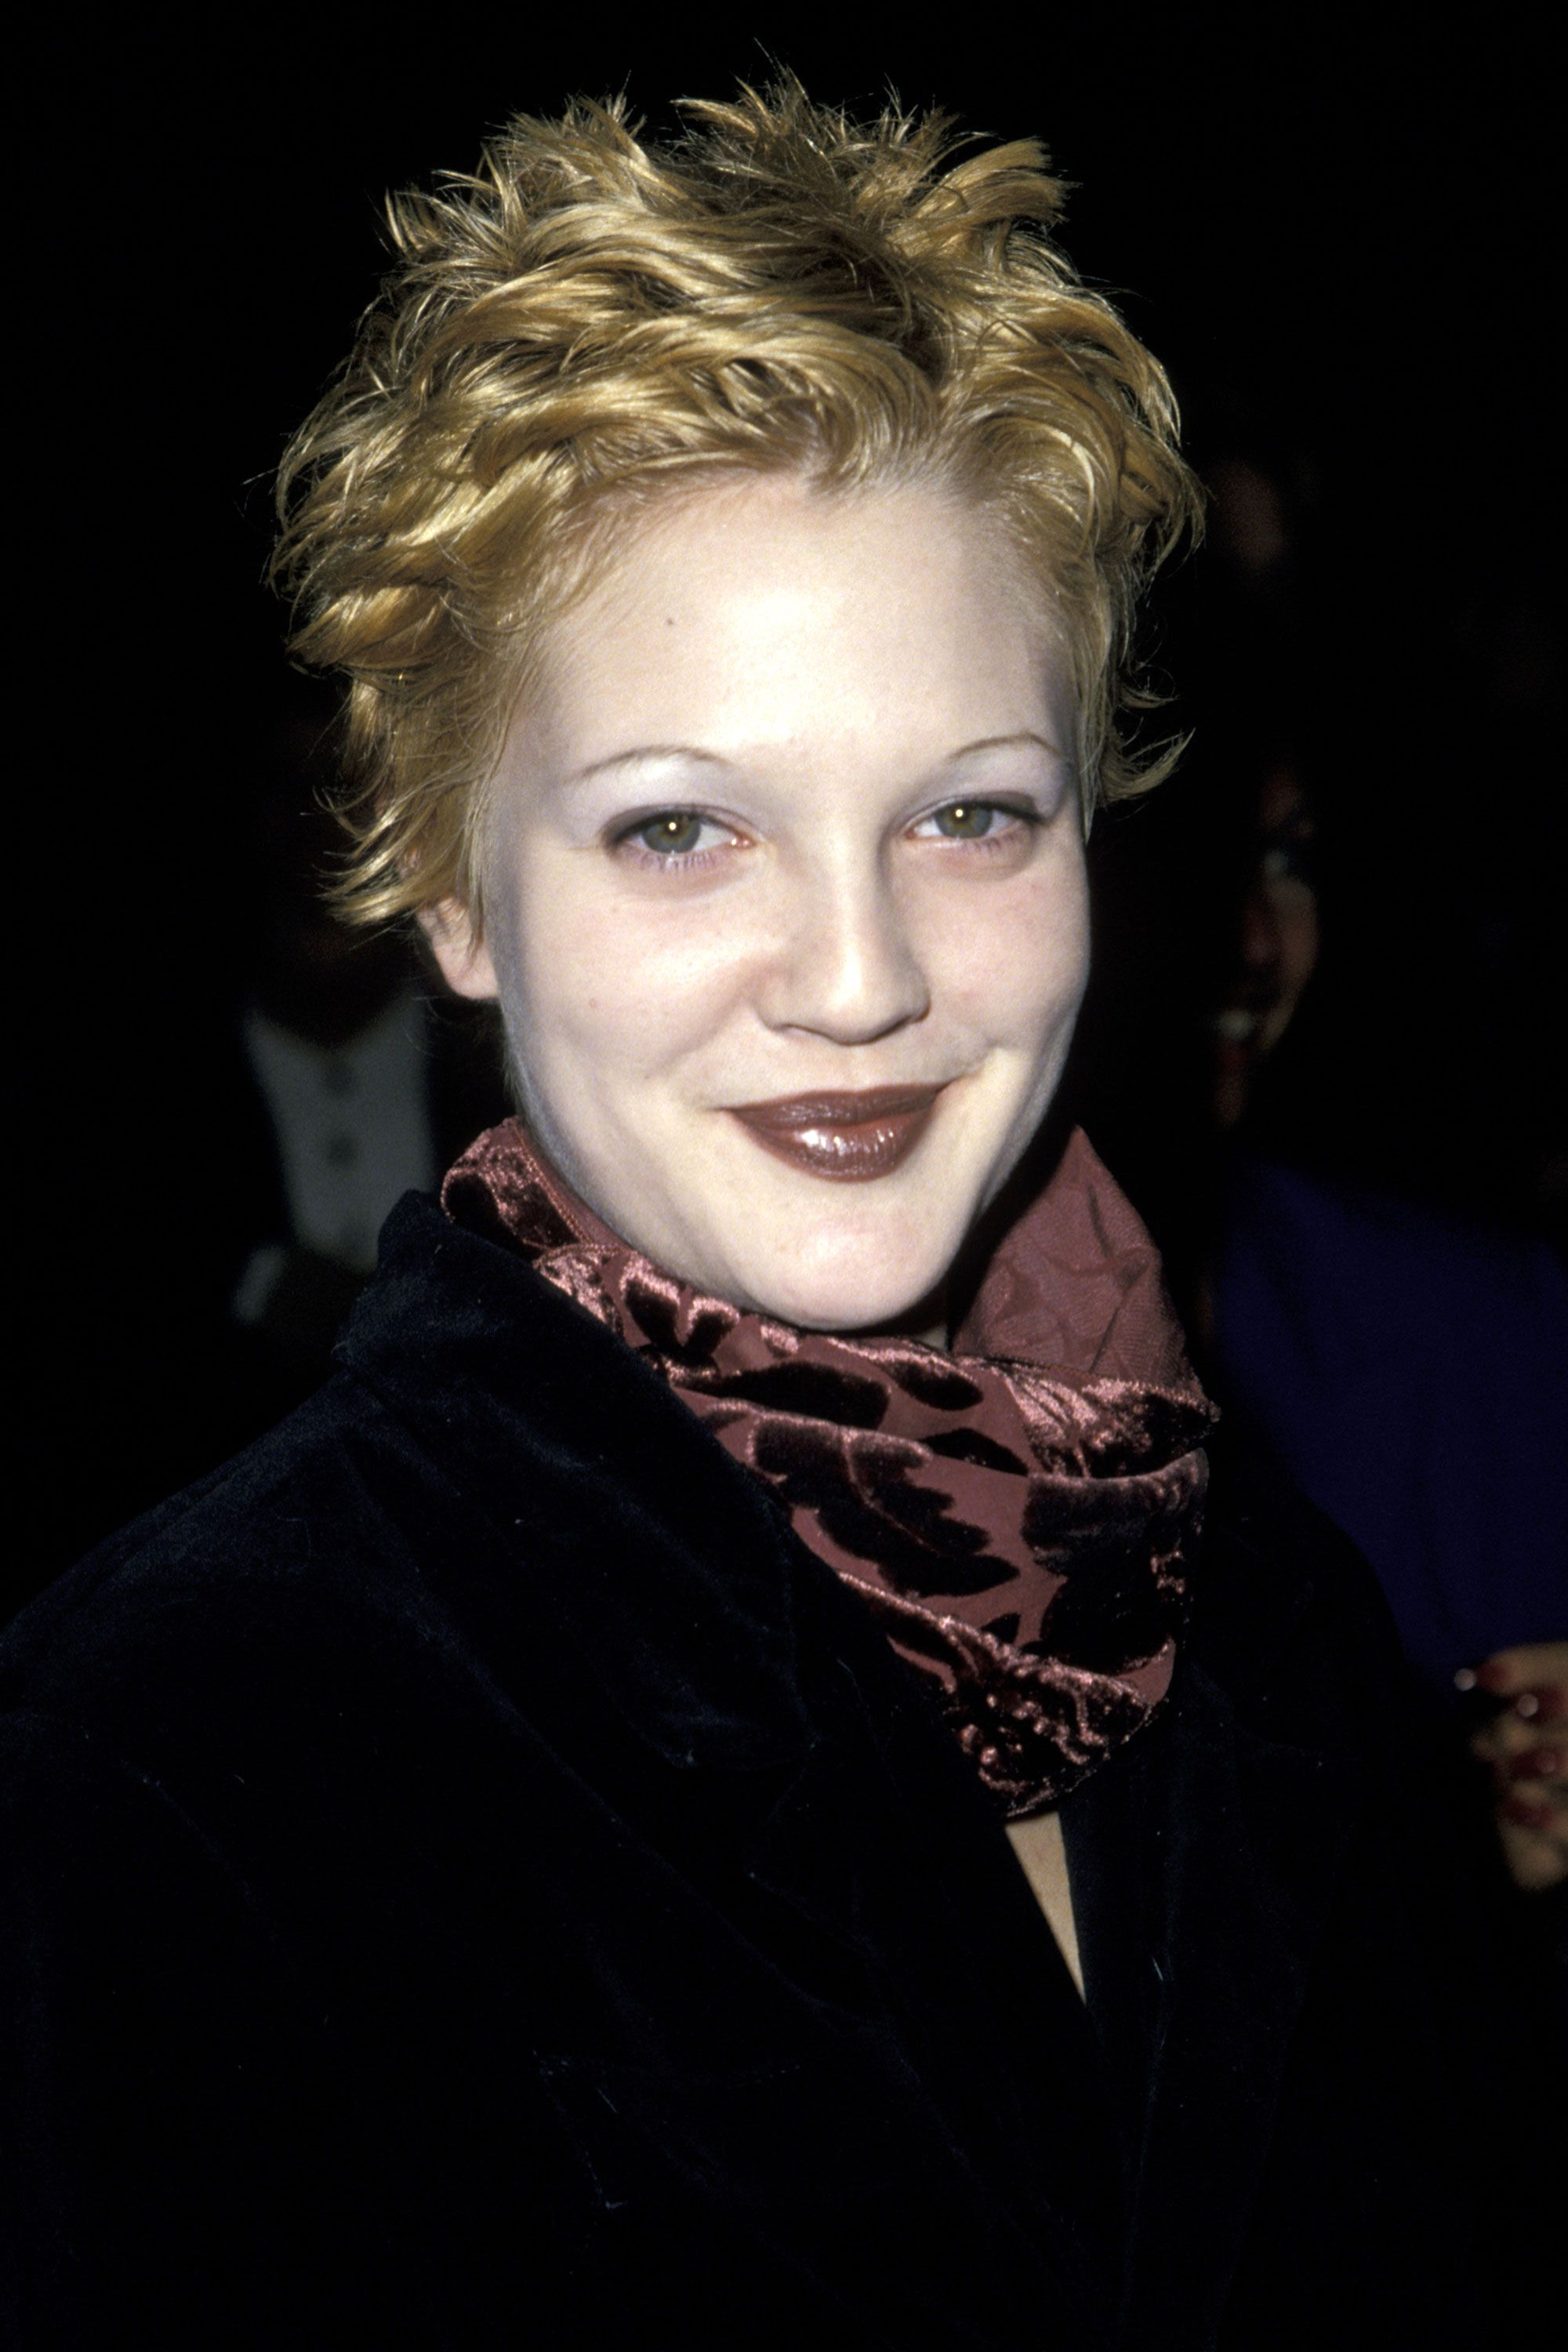 The Top Pixie Haircuts Of All Time | Short Hairstyles | Pinterest Intended For Drew Barrymore Short Haircuts (View 18 of 25)